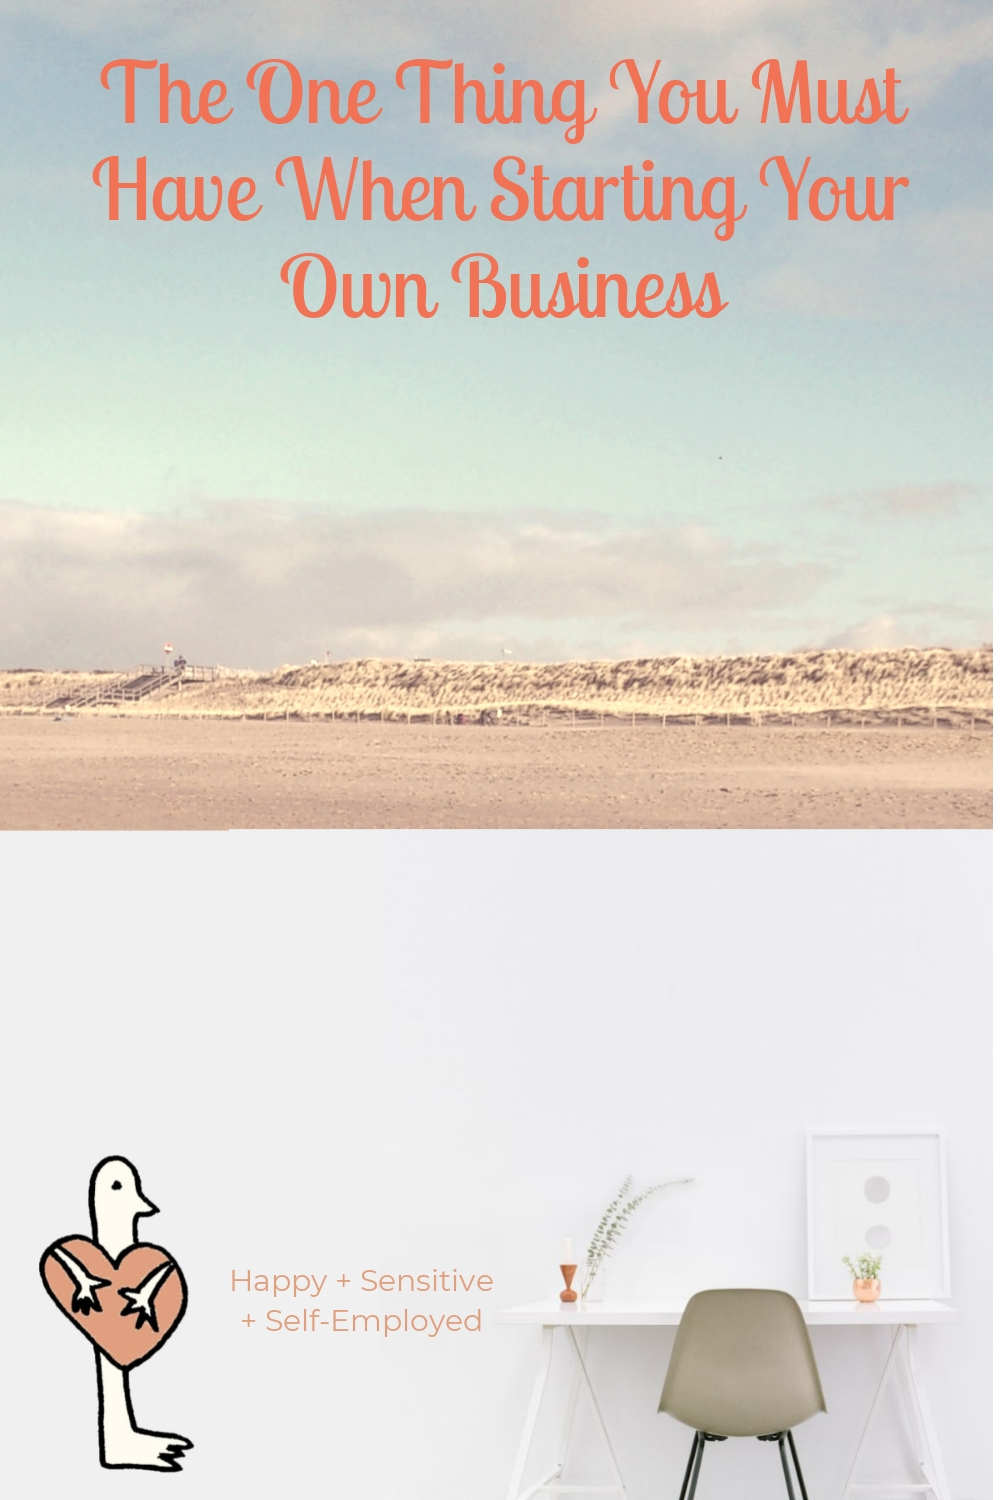 The One Thing You Must Have When Starting Your Own Business